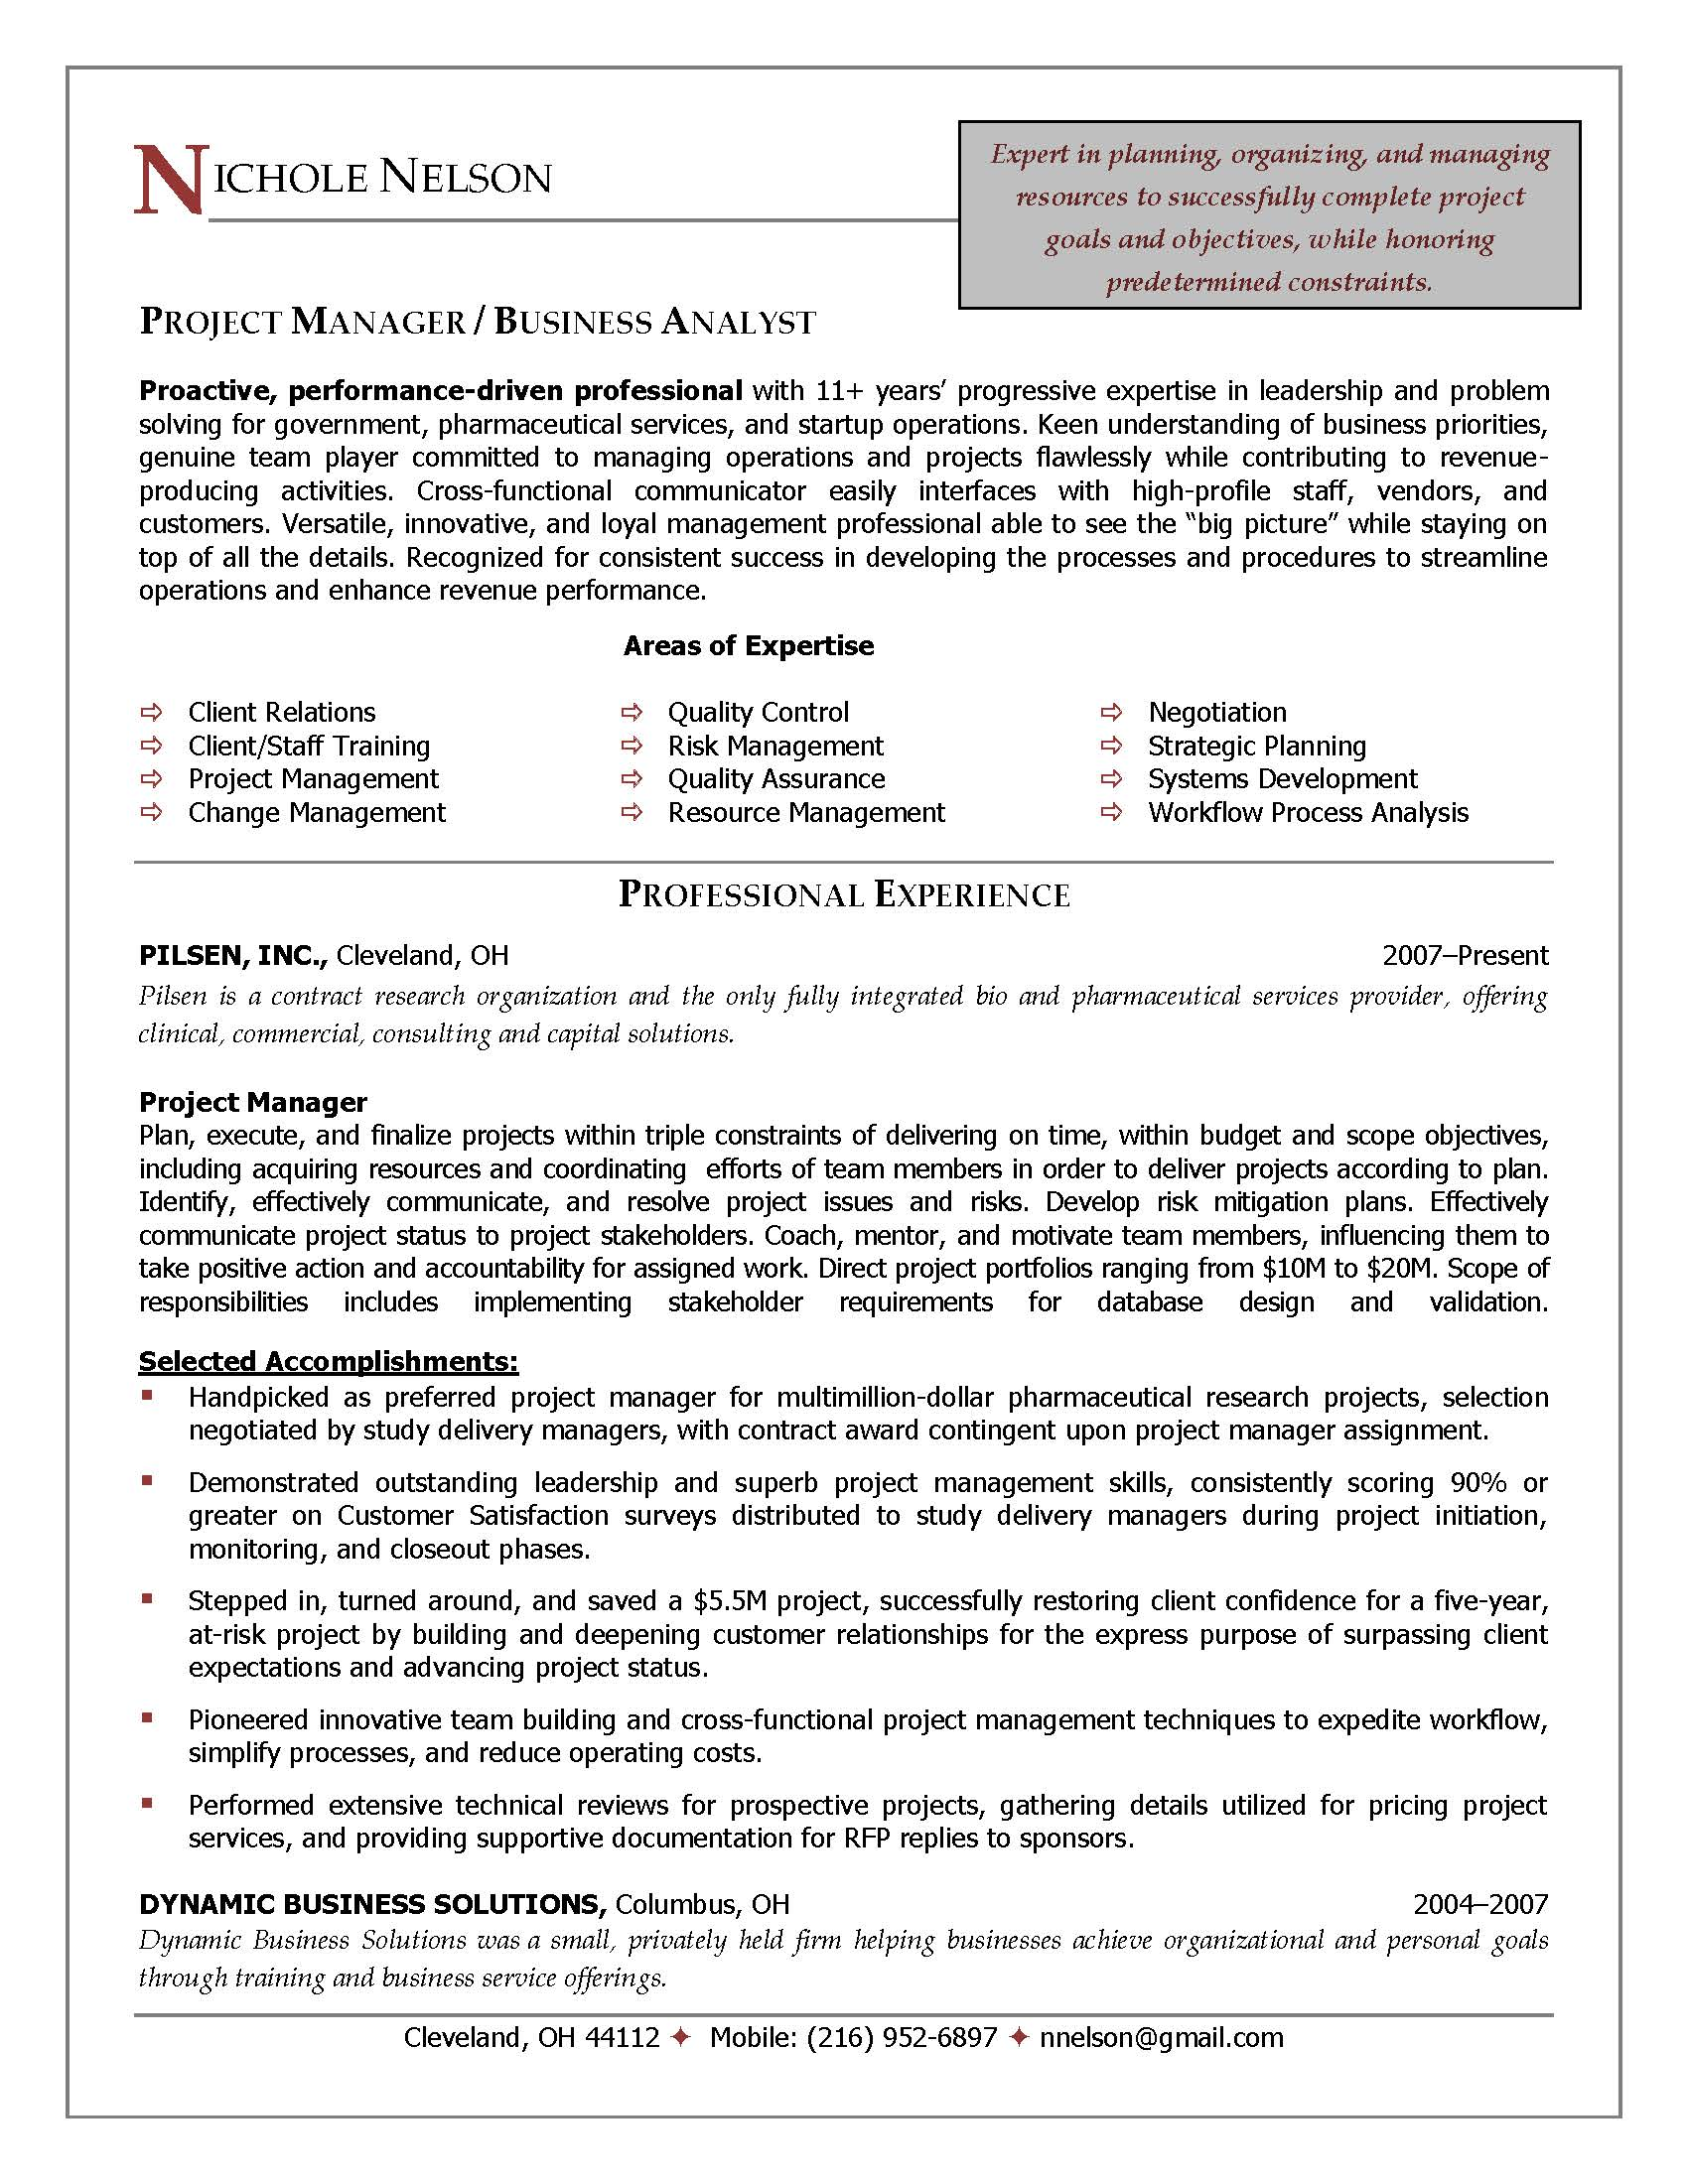 Project Manager Resume Sample, Provided By Elite Resume Writing Services  Project Manager Skills Resume